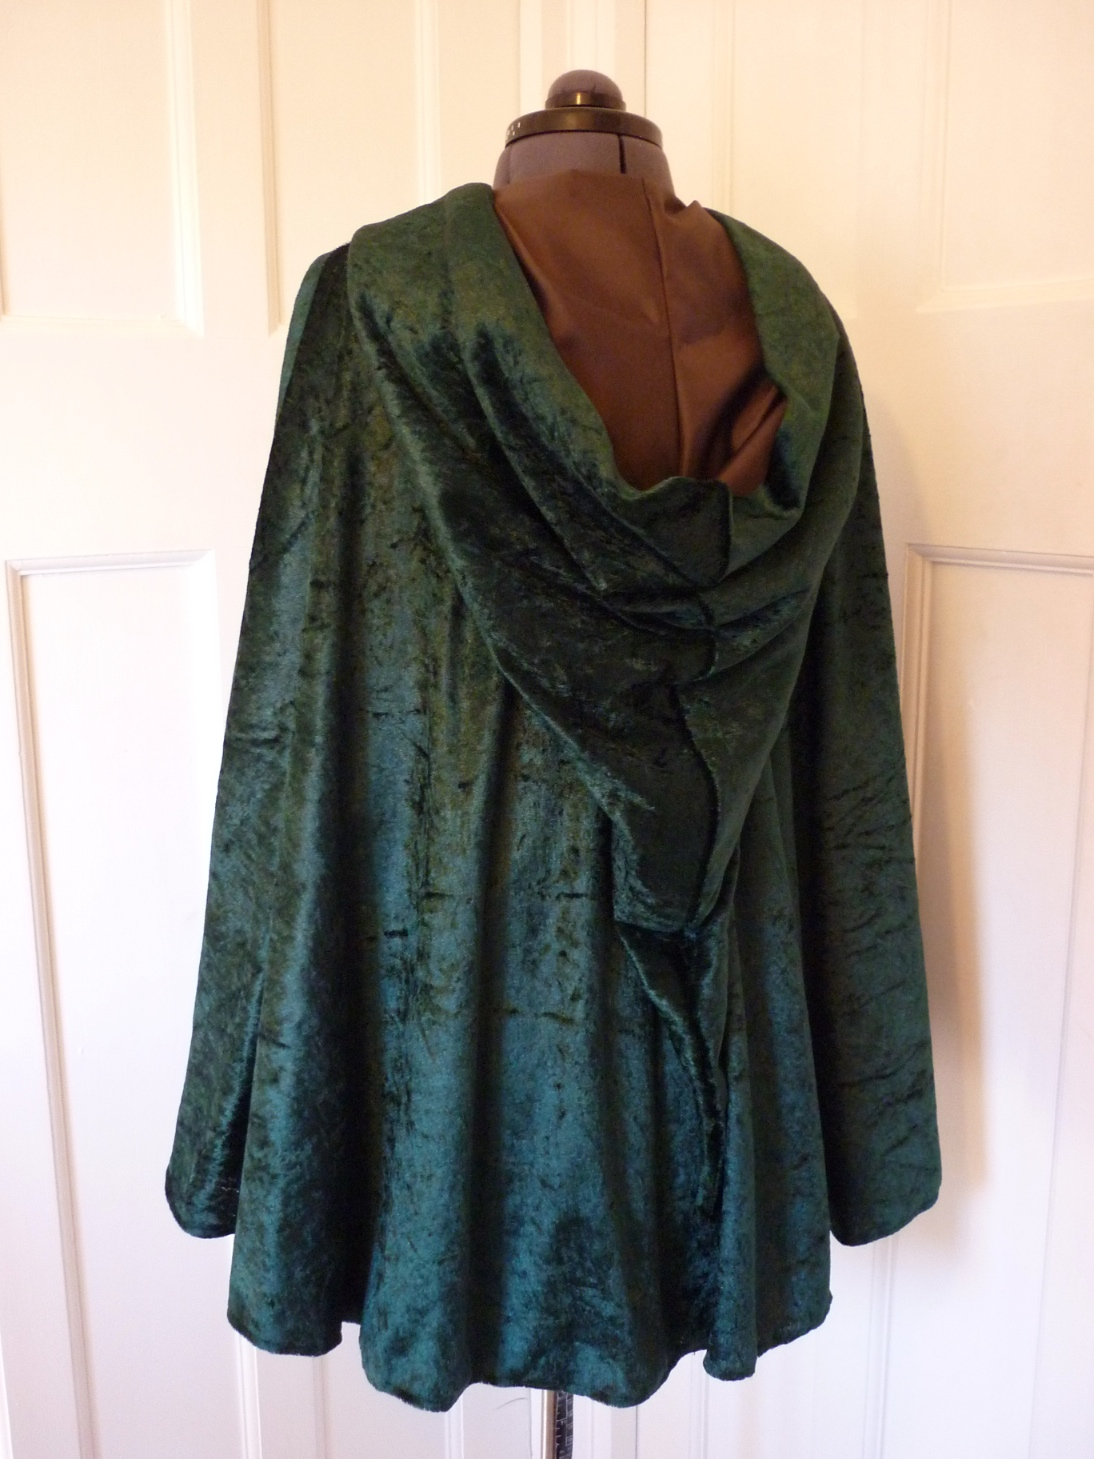 Crushed Velvet Cape with contrasting lining - pointed hood - choice of colours - made to order